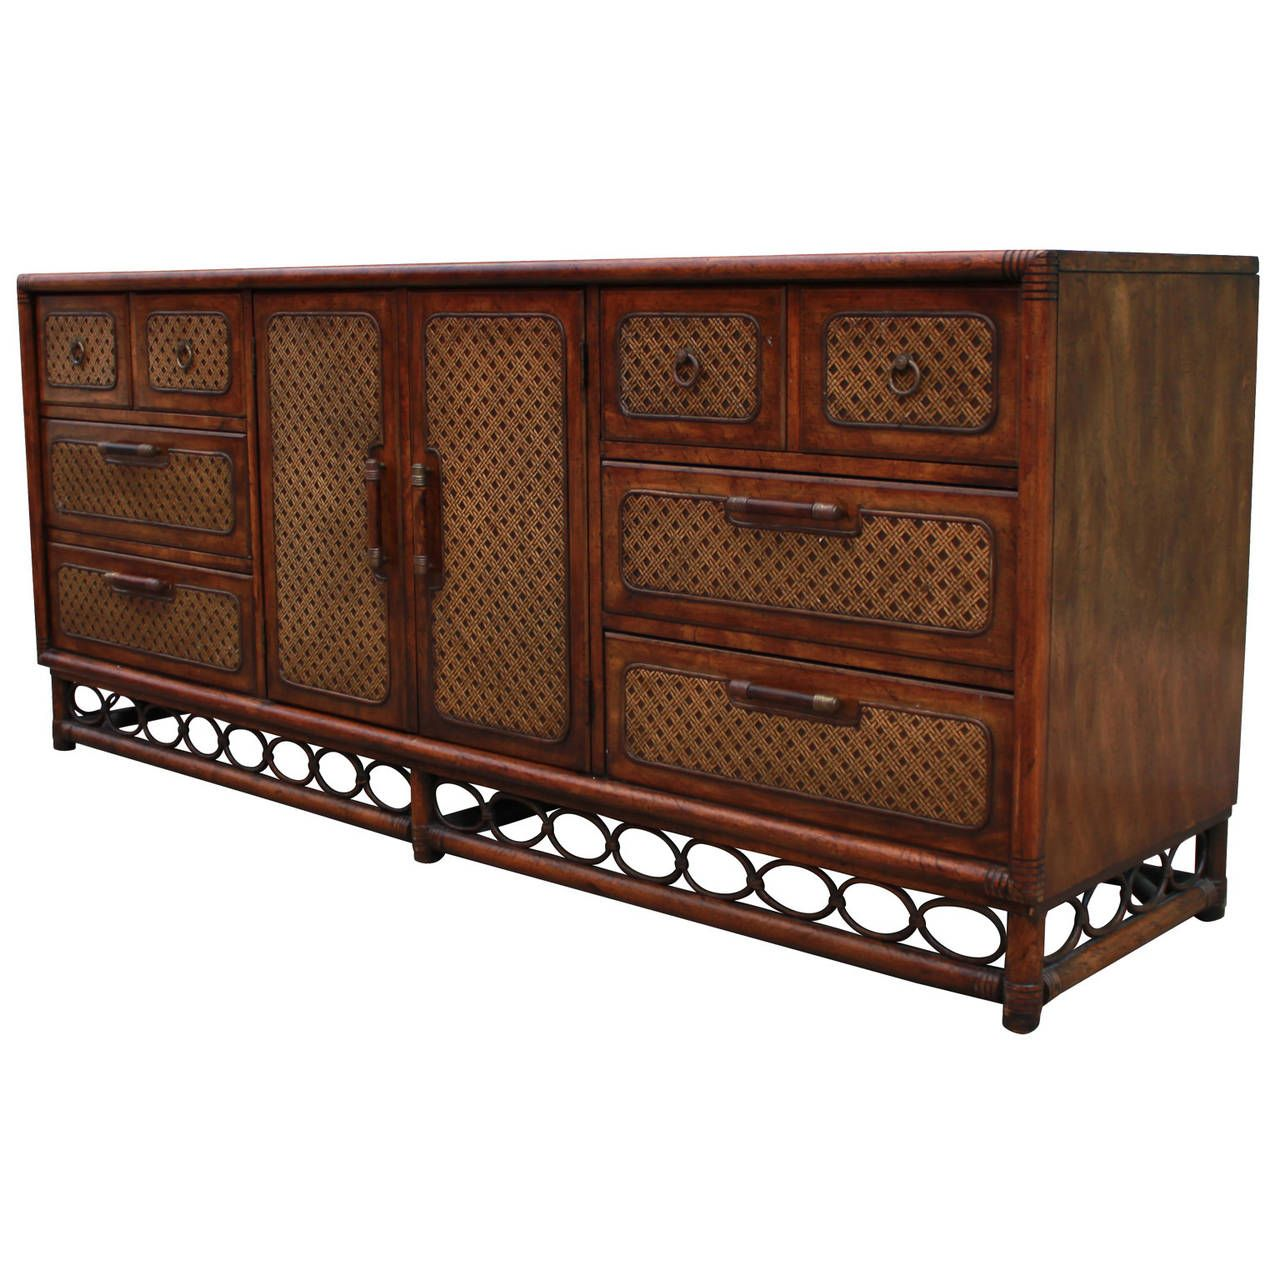 Faux Bamboo and Cane Campaign Dresser | From a unique collection of antique and modern sideboards at https://www.1stdibs.com/furniture/storage-case-pieces/sideboards/